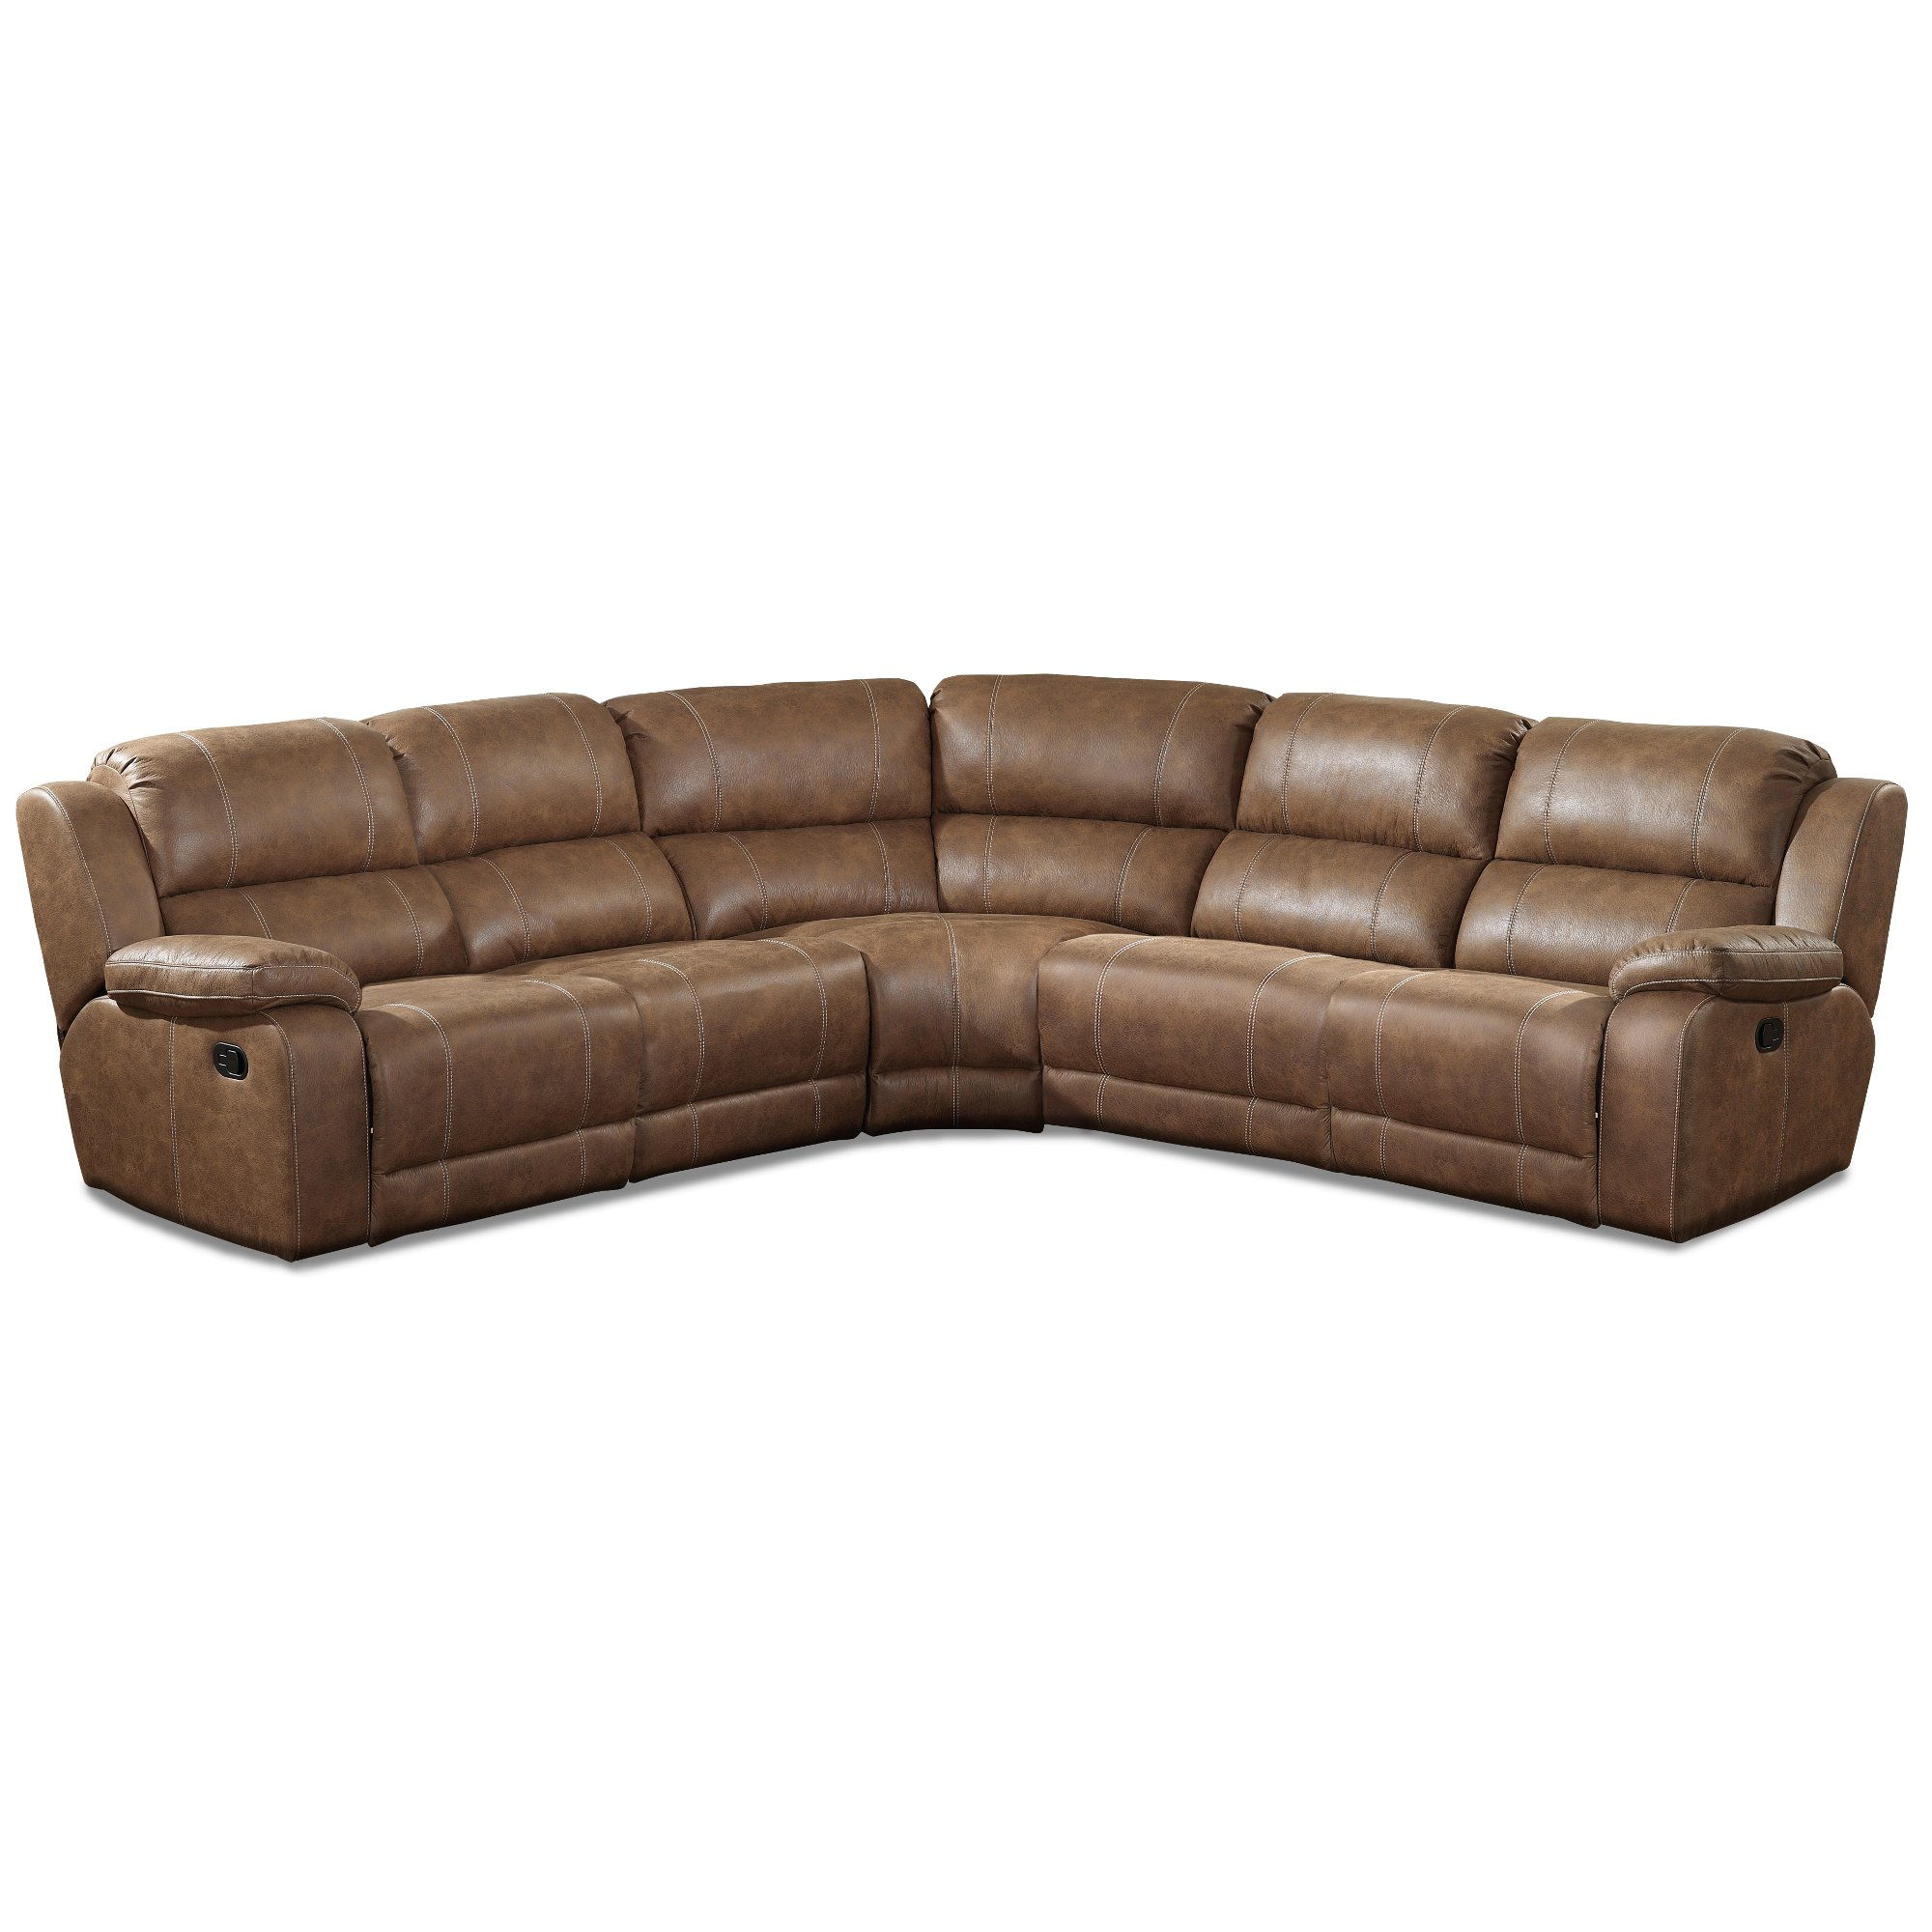 Reclining sofa sectionals sectional sofas and leather for Sectional furniture